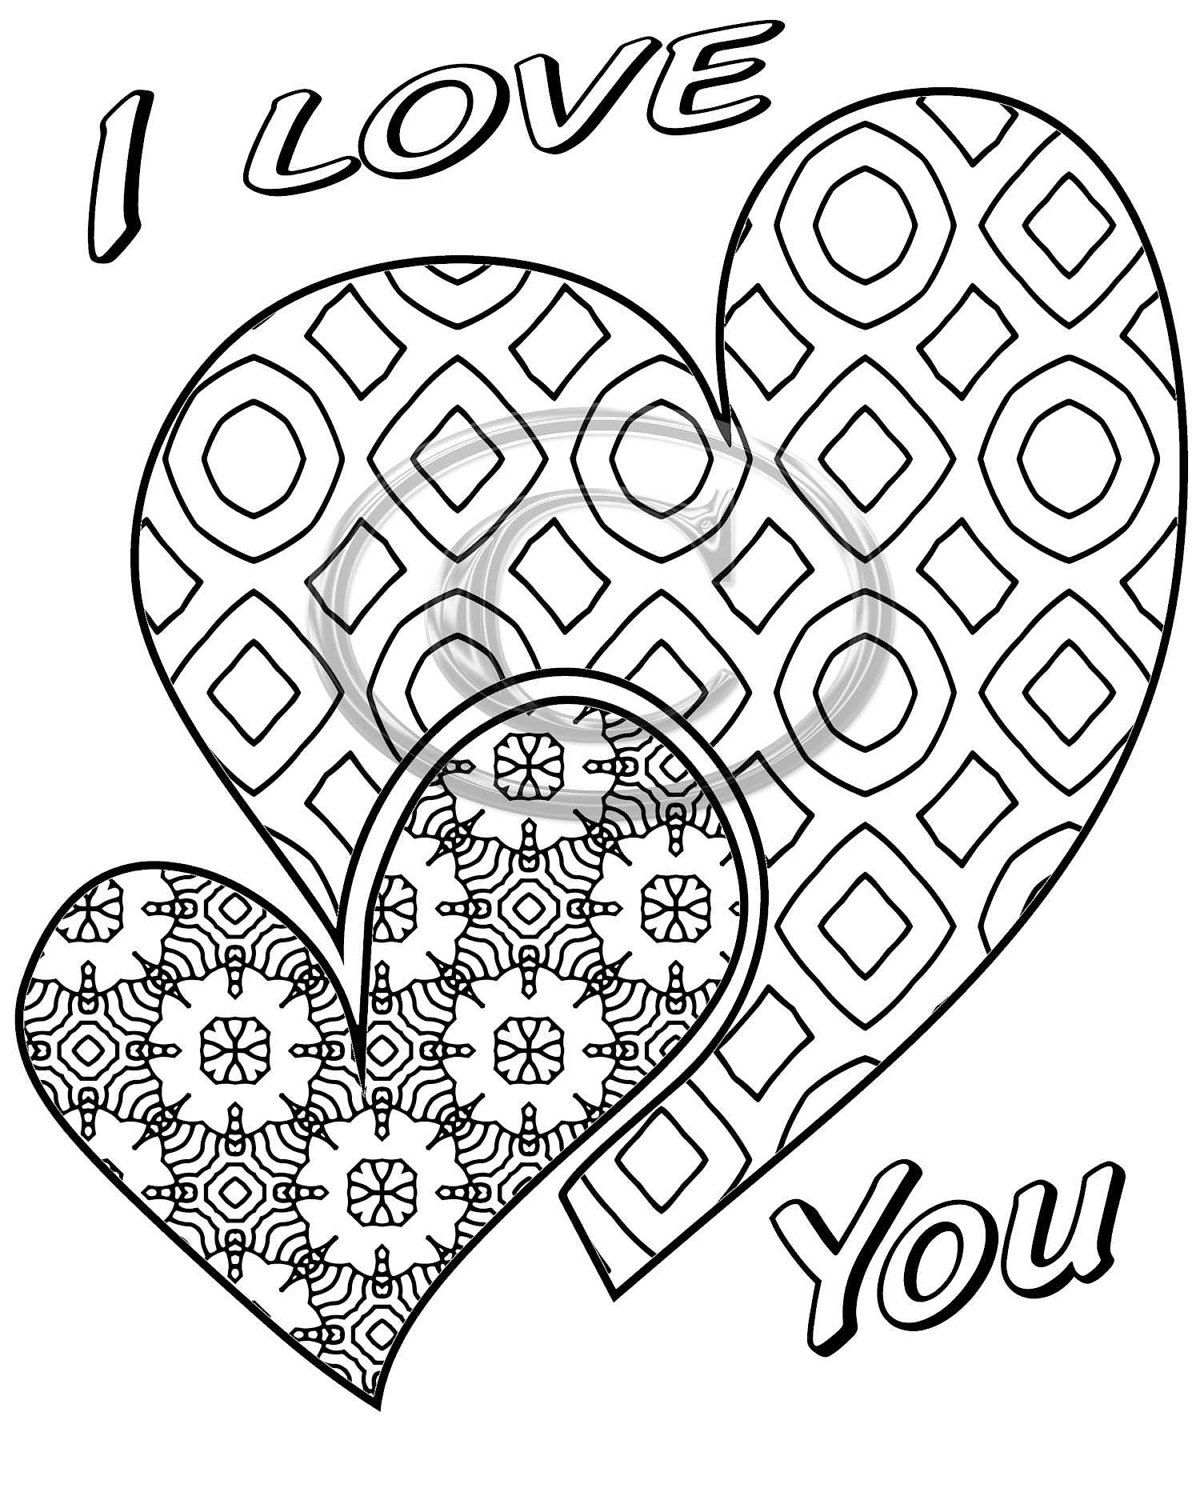 I Love You 2 Hearts coloring page that is a printable instant ...